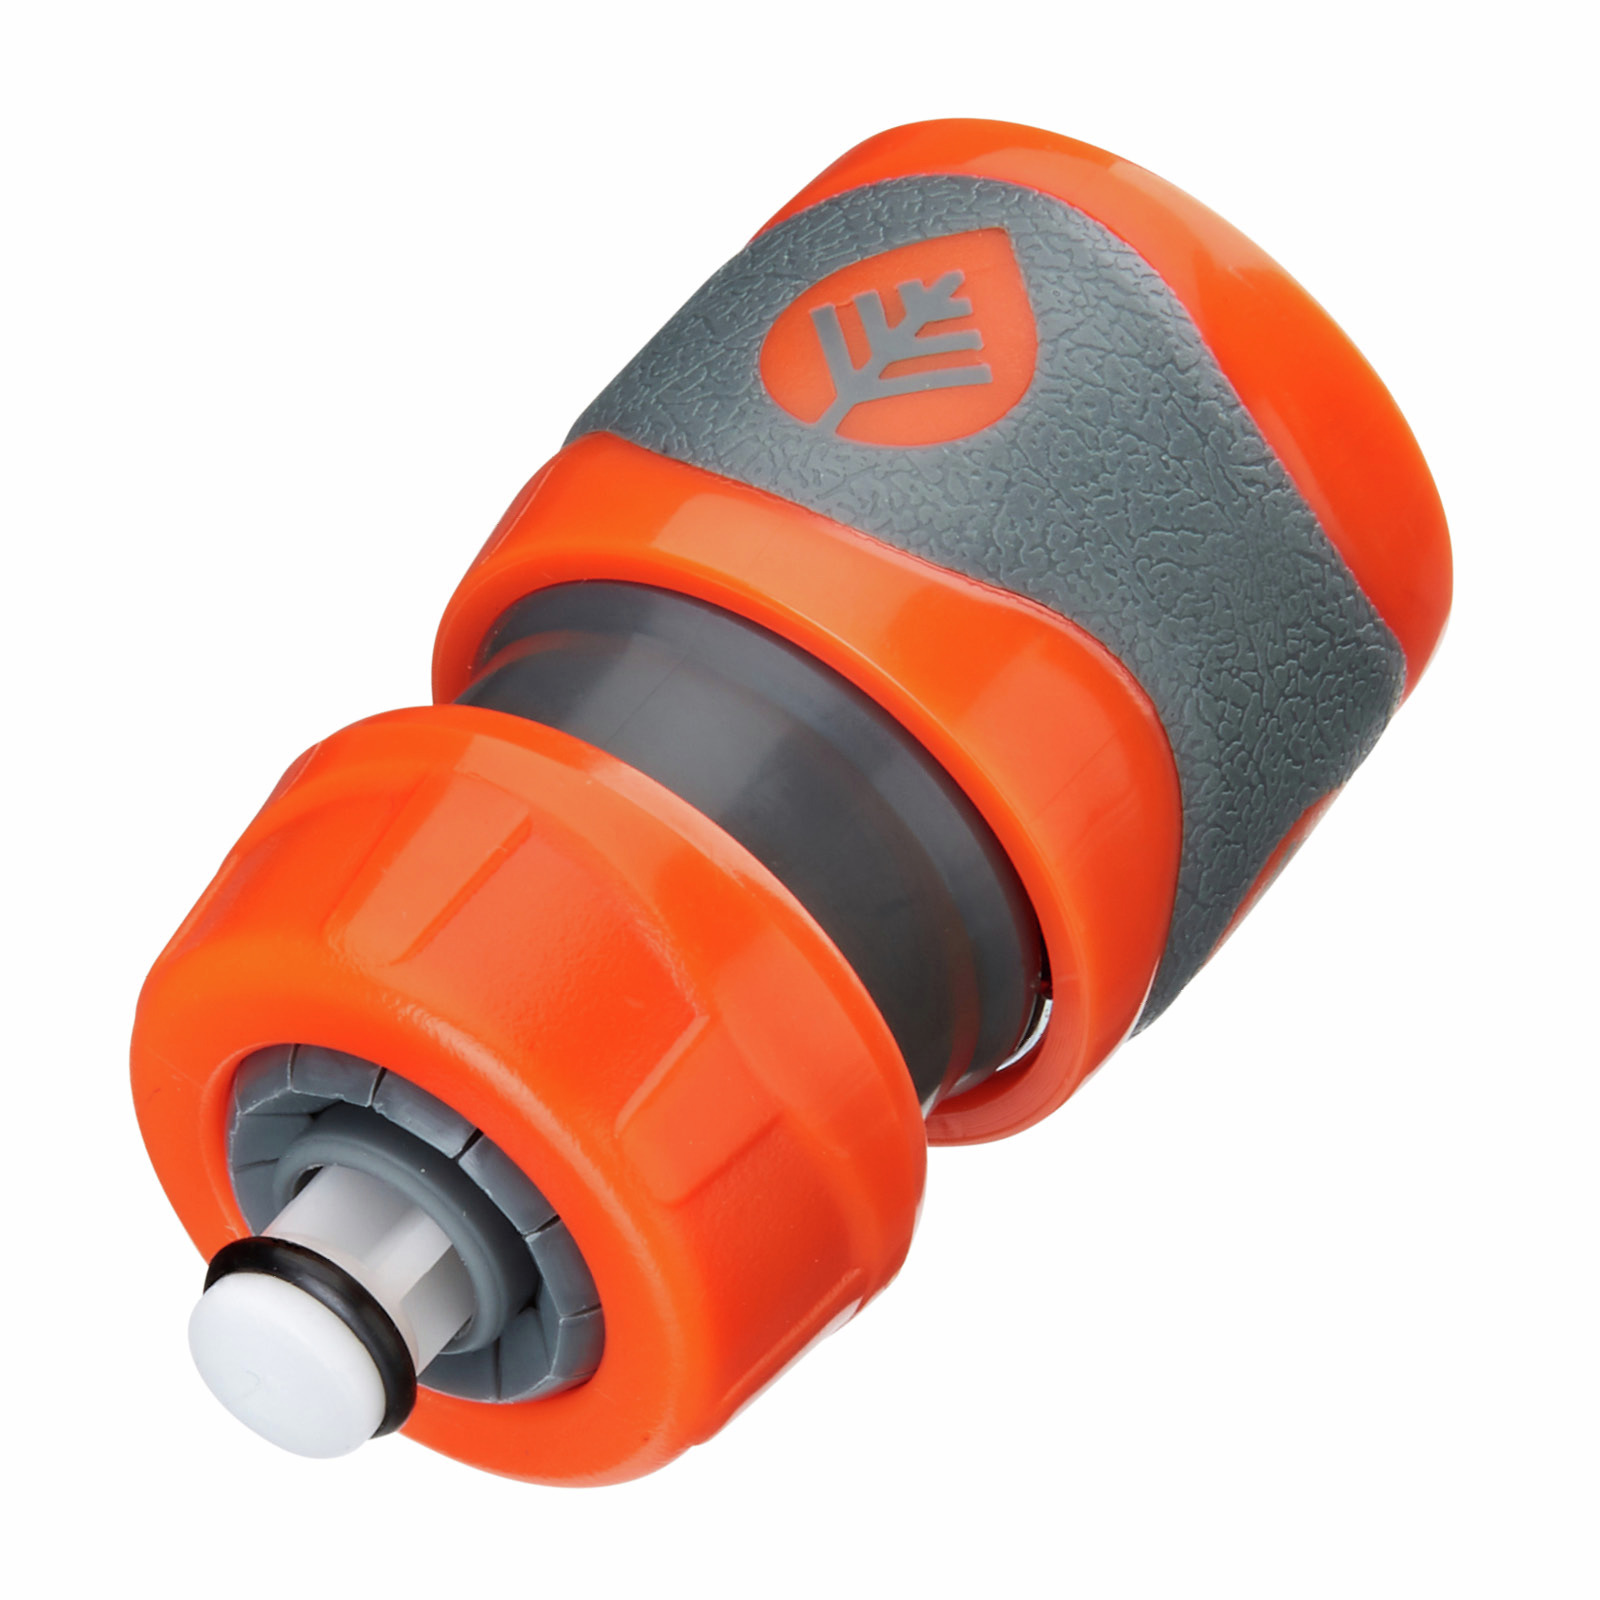 Pope 12mm Comfort Grip Hose Connector With Stop Valve